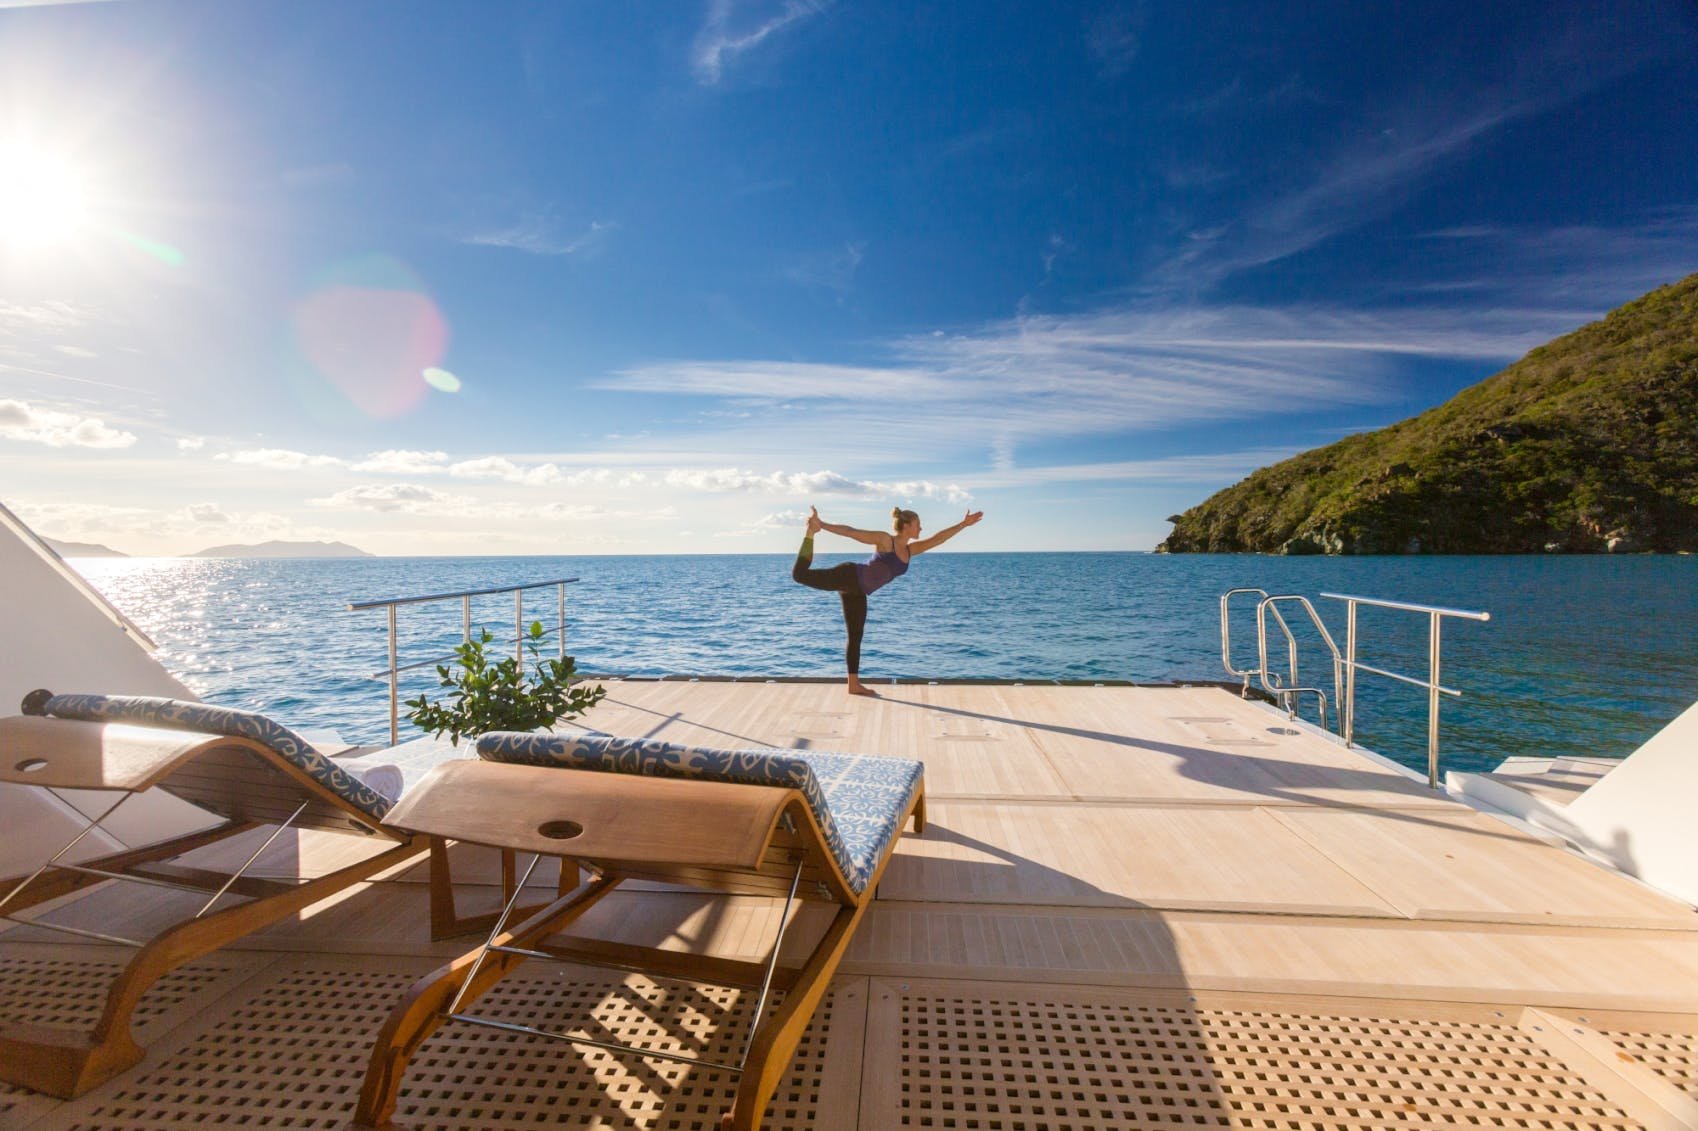 Icon Charter Yacht PARTY GIRL girl on beach club doing yoga in the Caribbean